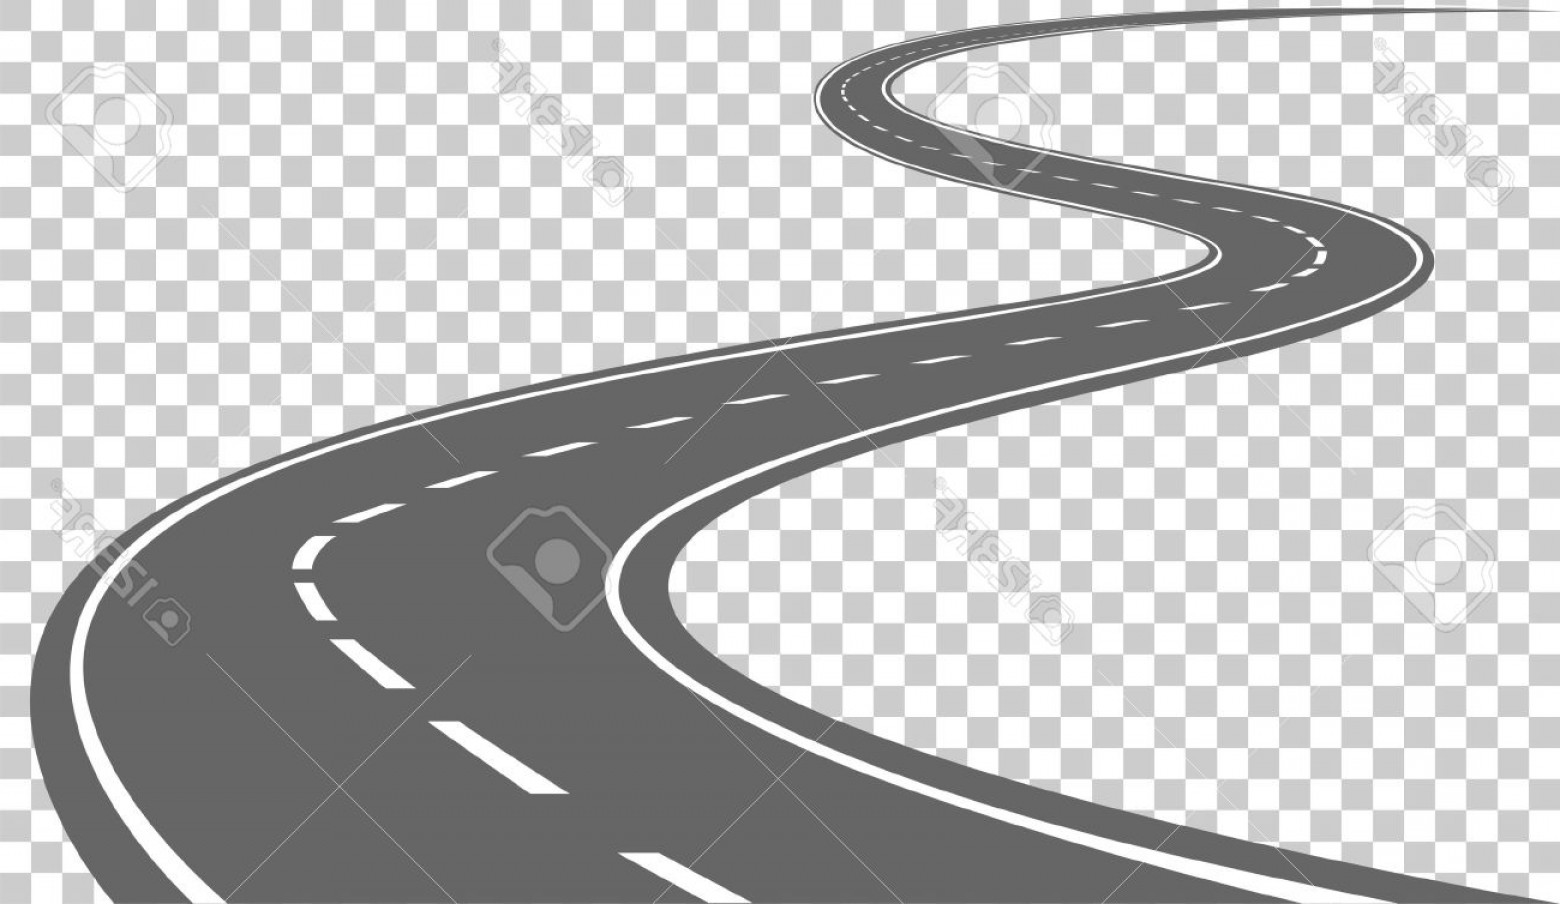 Transparent Curved Road Vector: Photostock Vector Curved Road With White Markings Vector Illustration